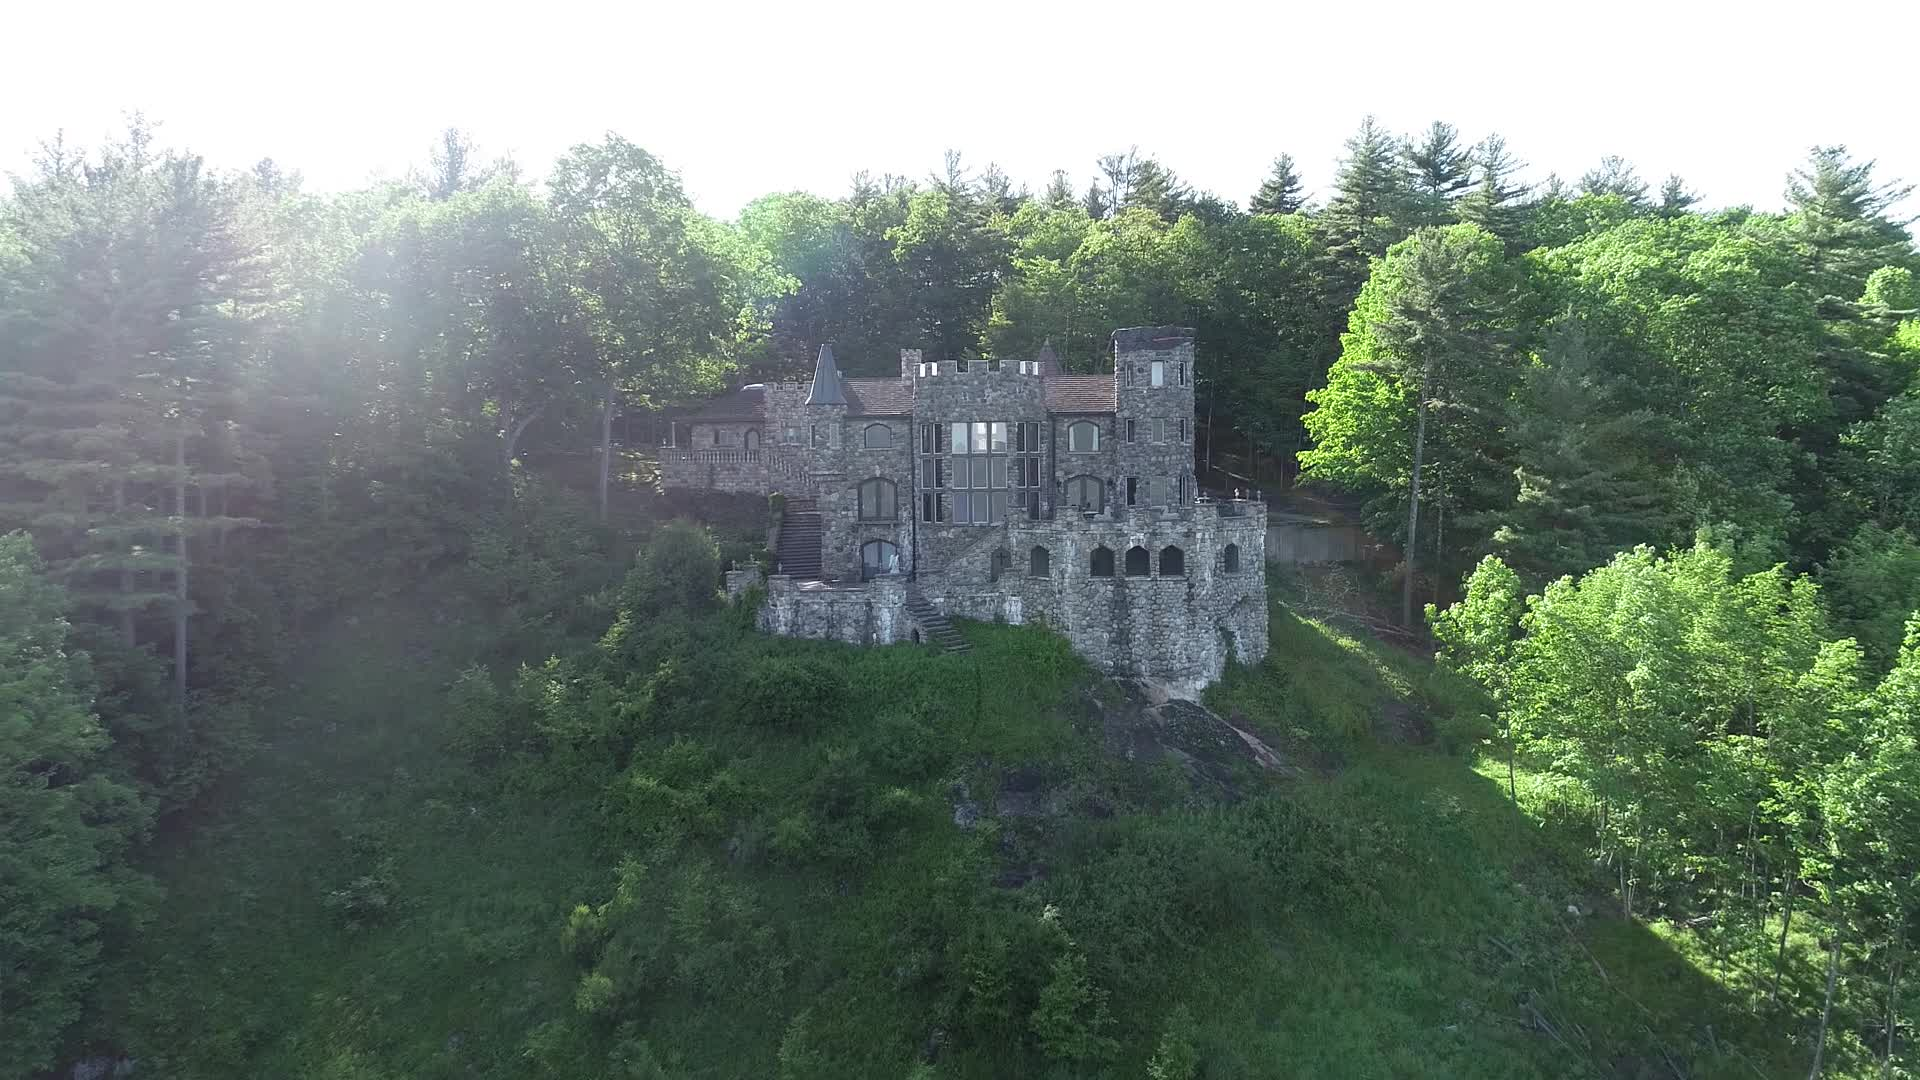 Dream Vacation Homes: You can rent this medieval castle on a lake in Upstate New York